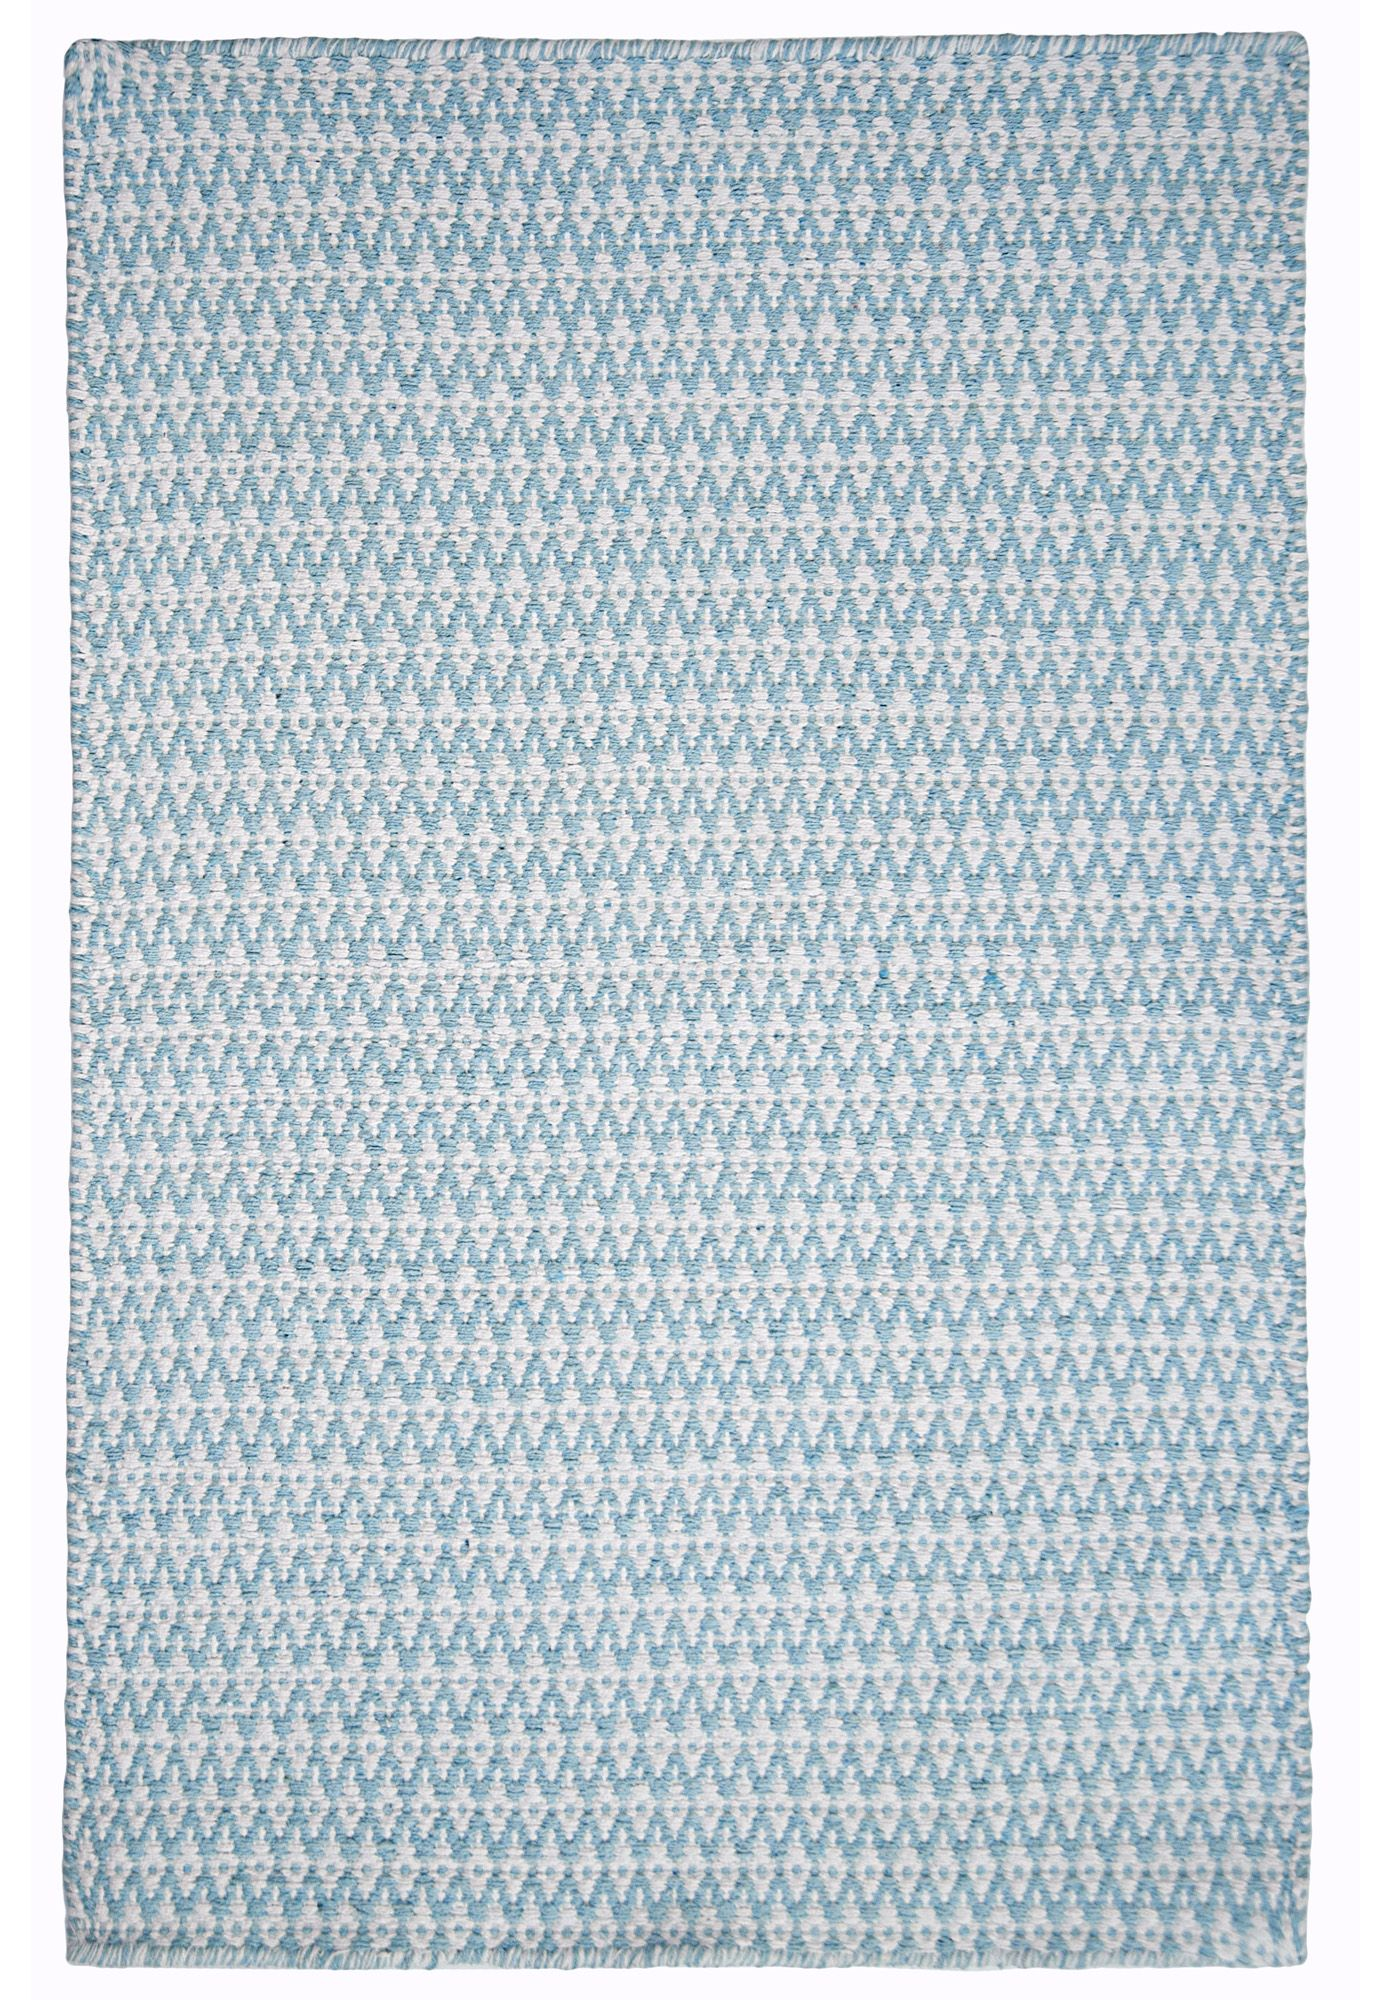 Hookandloom Ashley Eco Cotton Rug Light Blue White